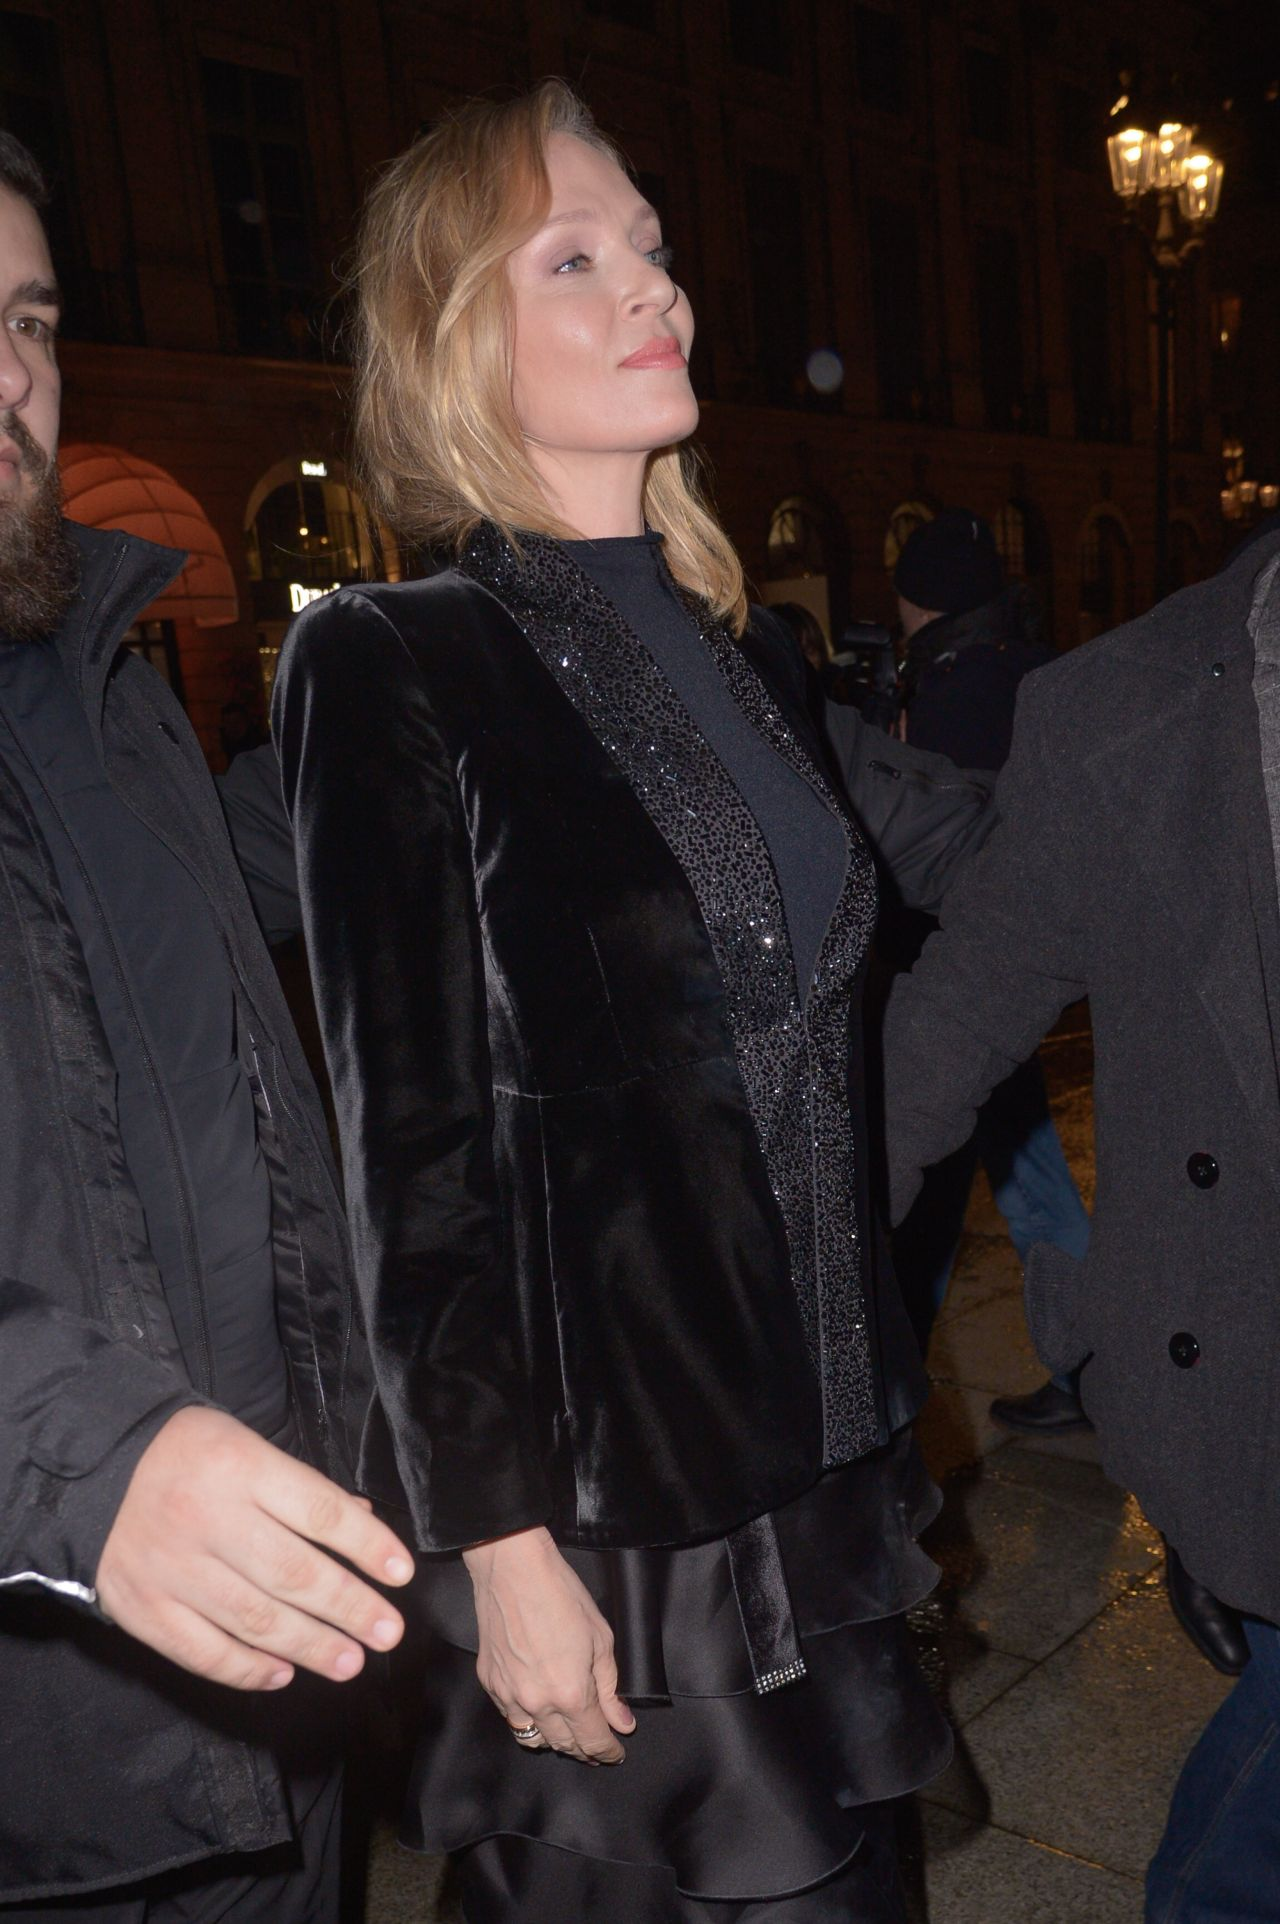 Uma Thurman Giorgio Armani Fashion Show In Paris 01 22 2019